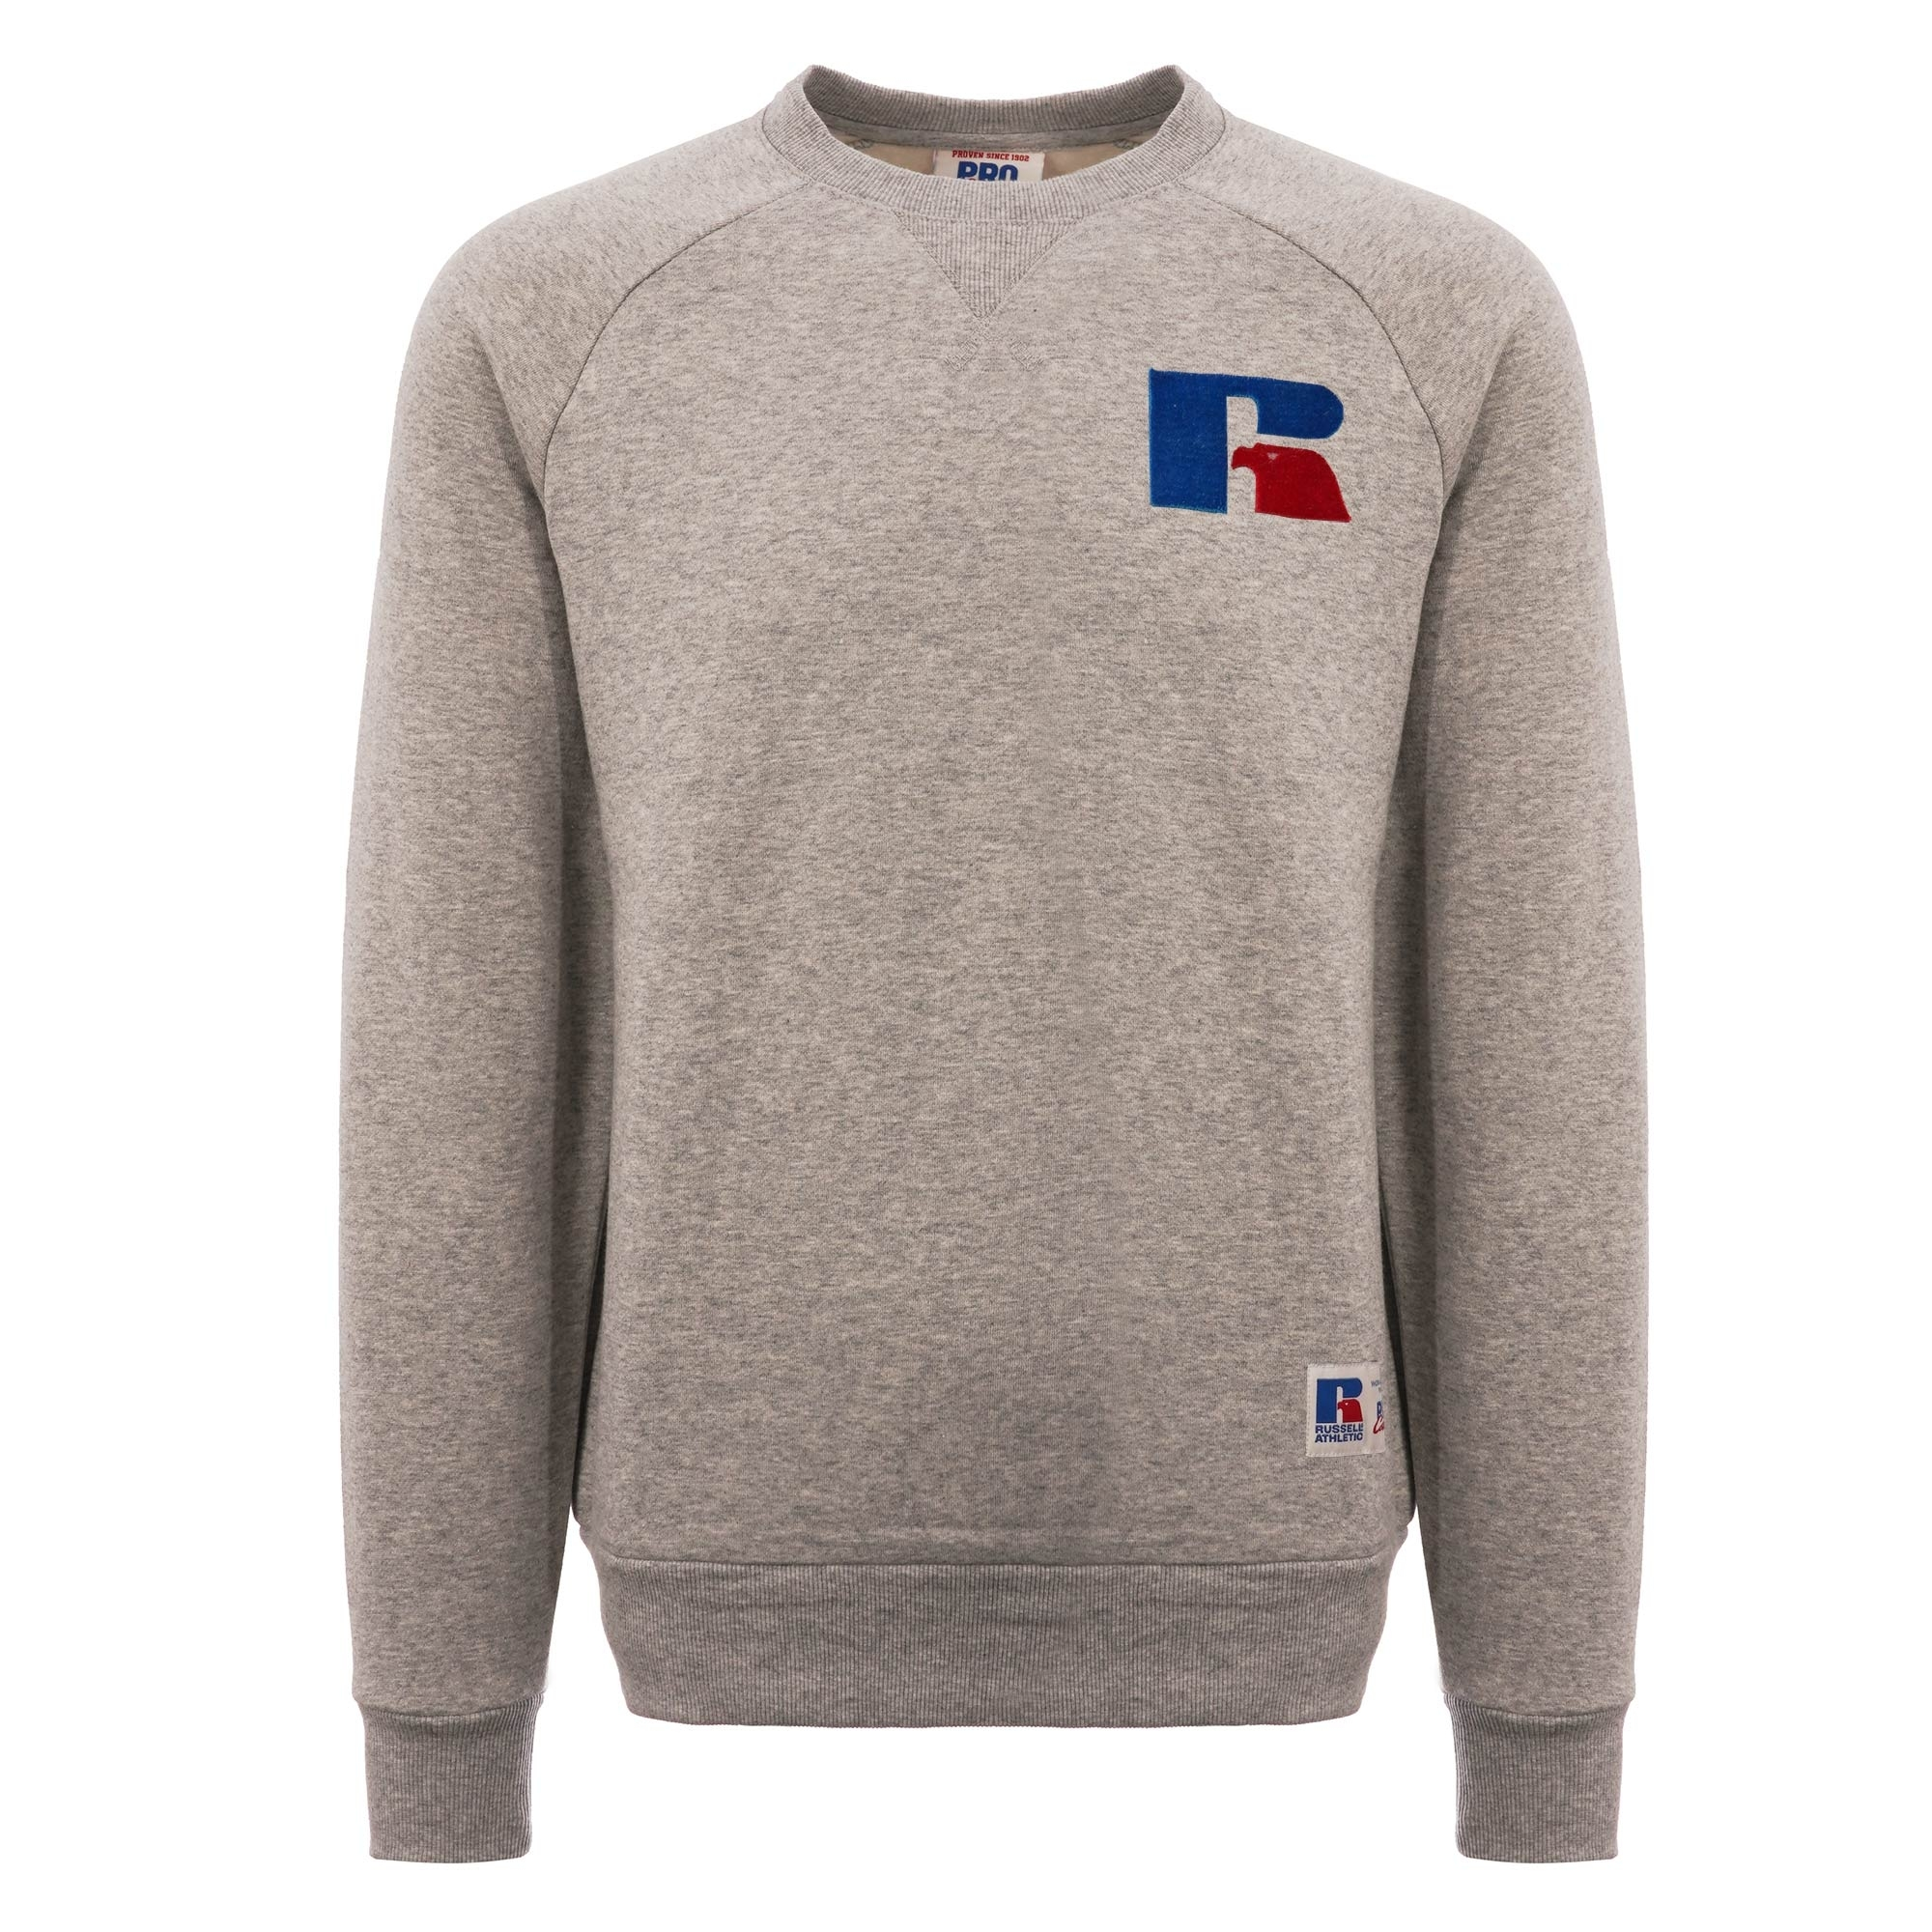 03a7ccc5510f Russell Athletic Crew Neck Sweatshirt